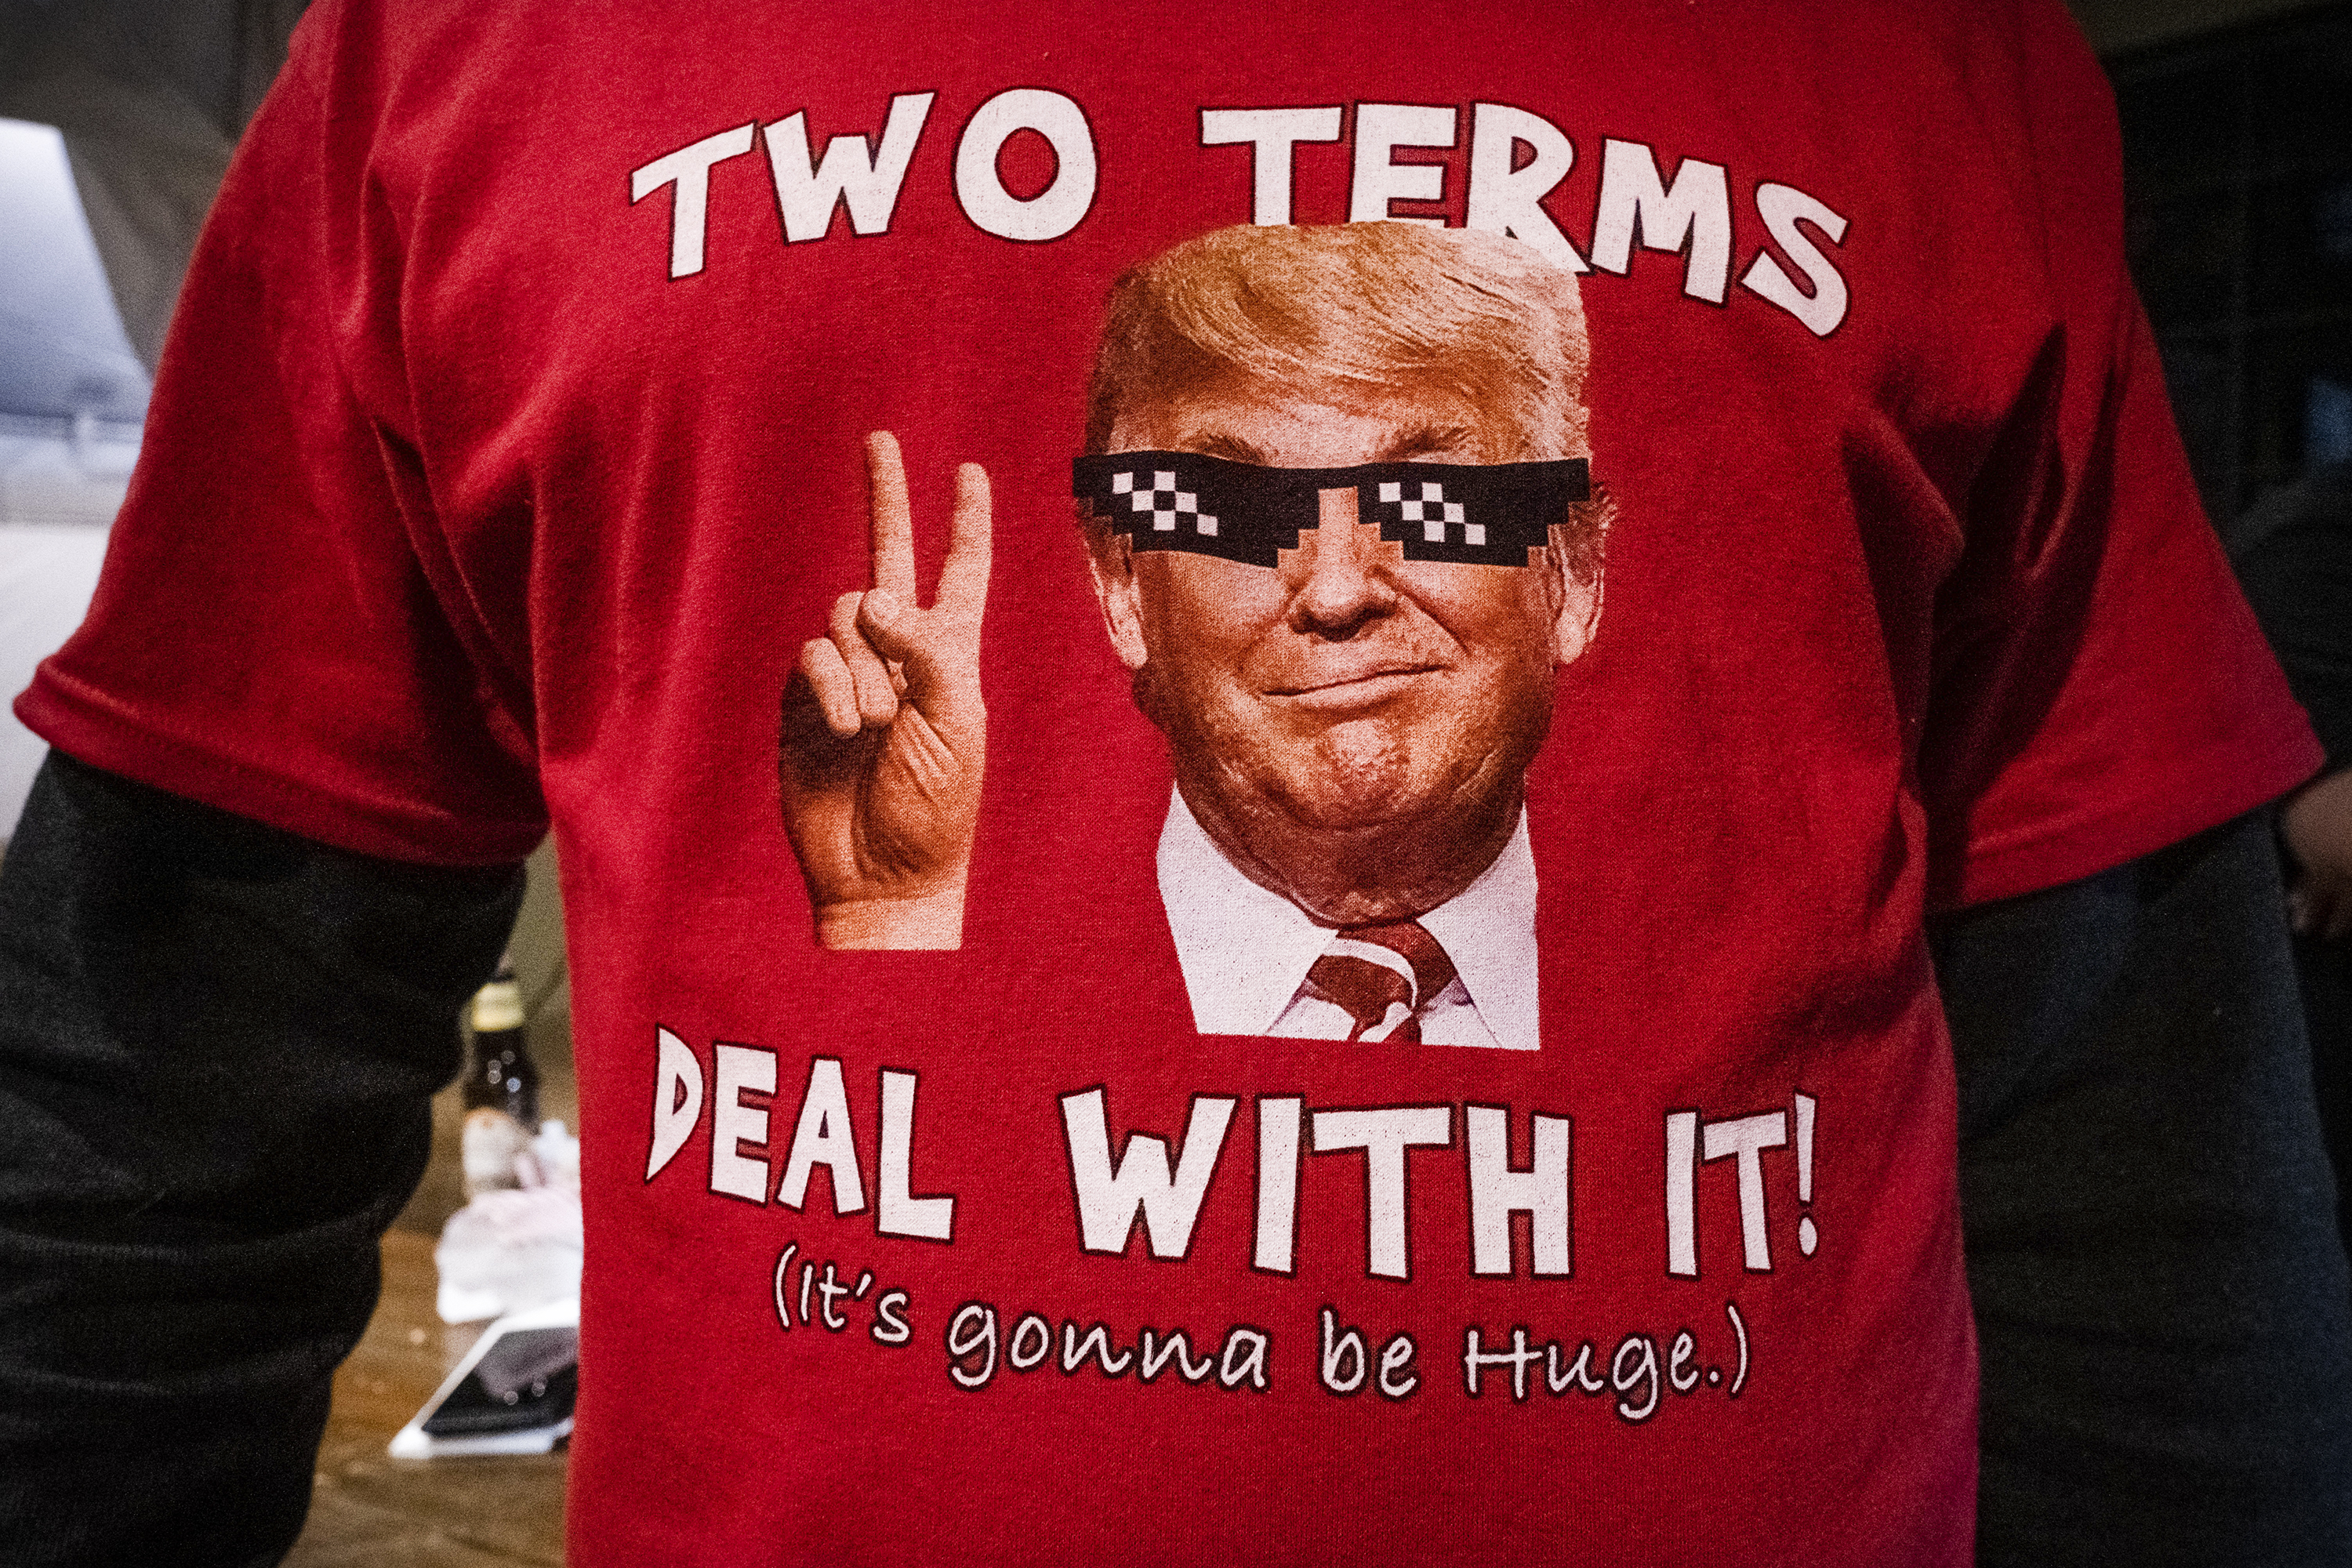 """A person wearing a Trump shirt that reads """"Two terms. Deal with it."""""""